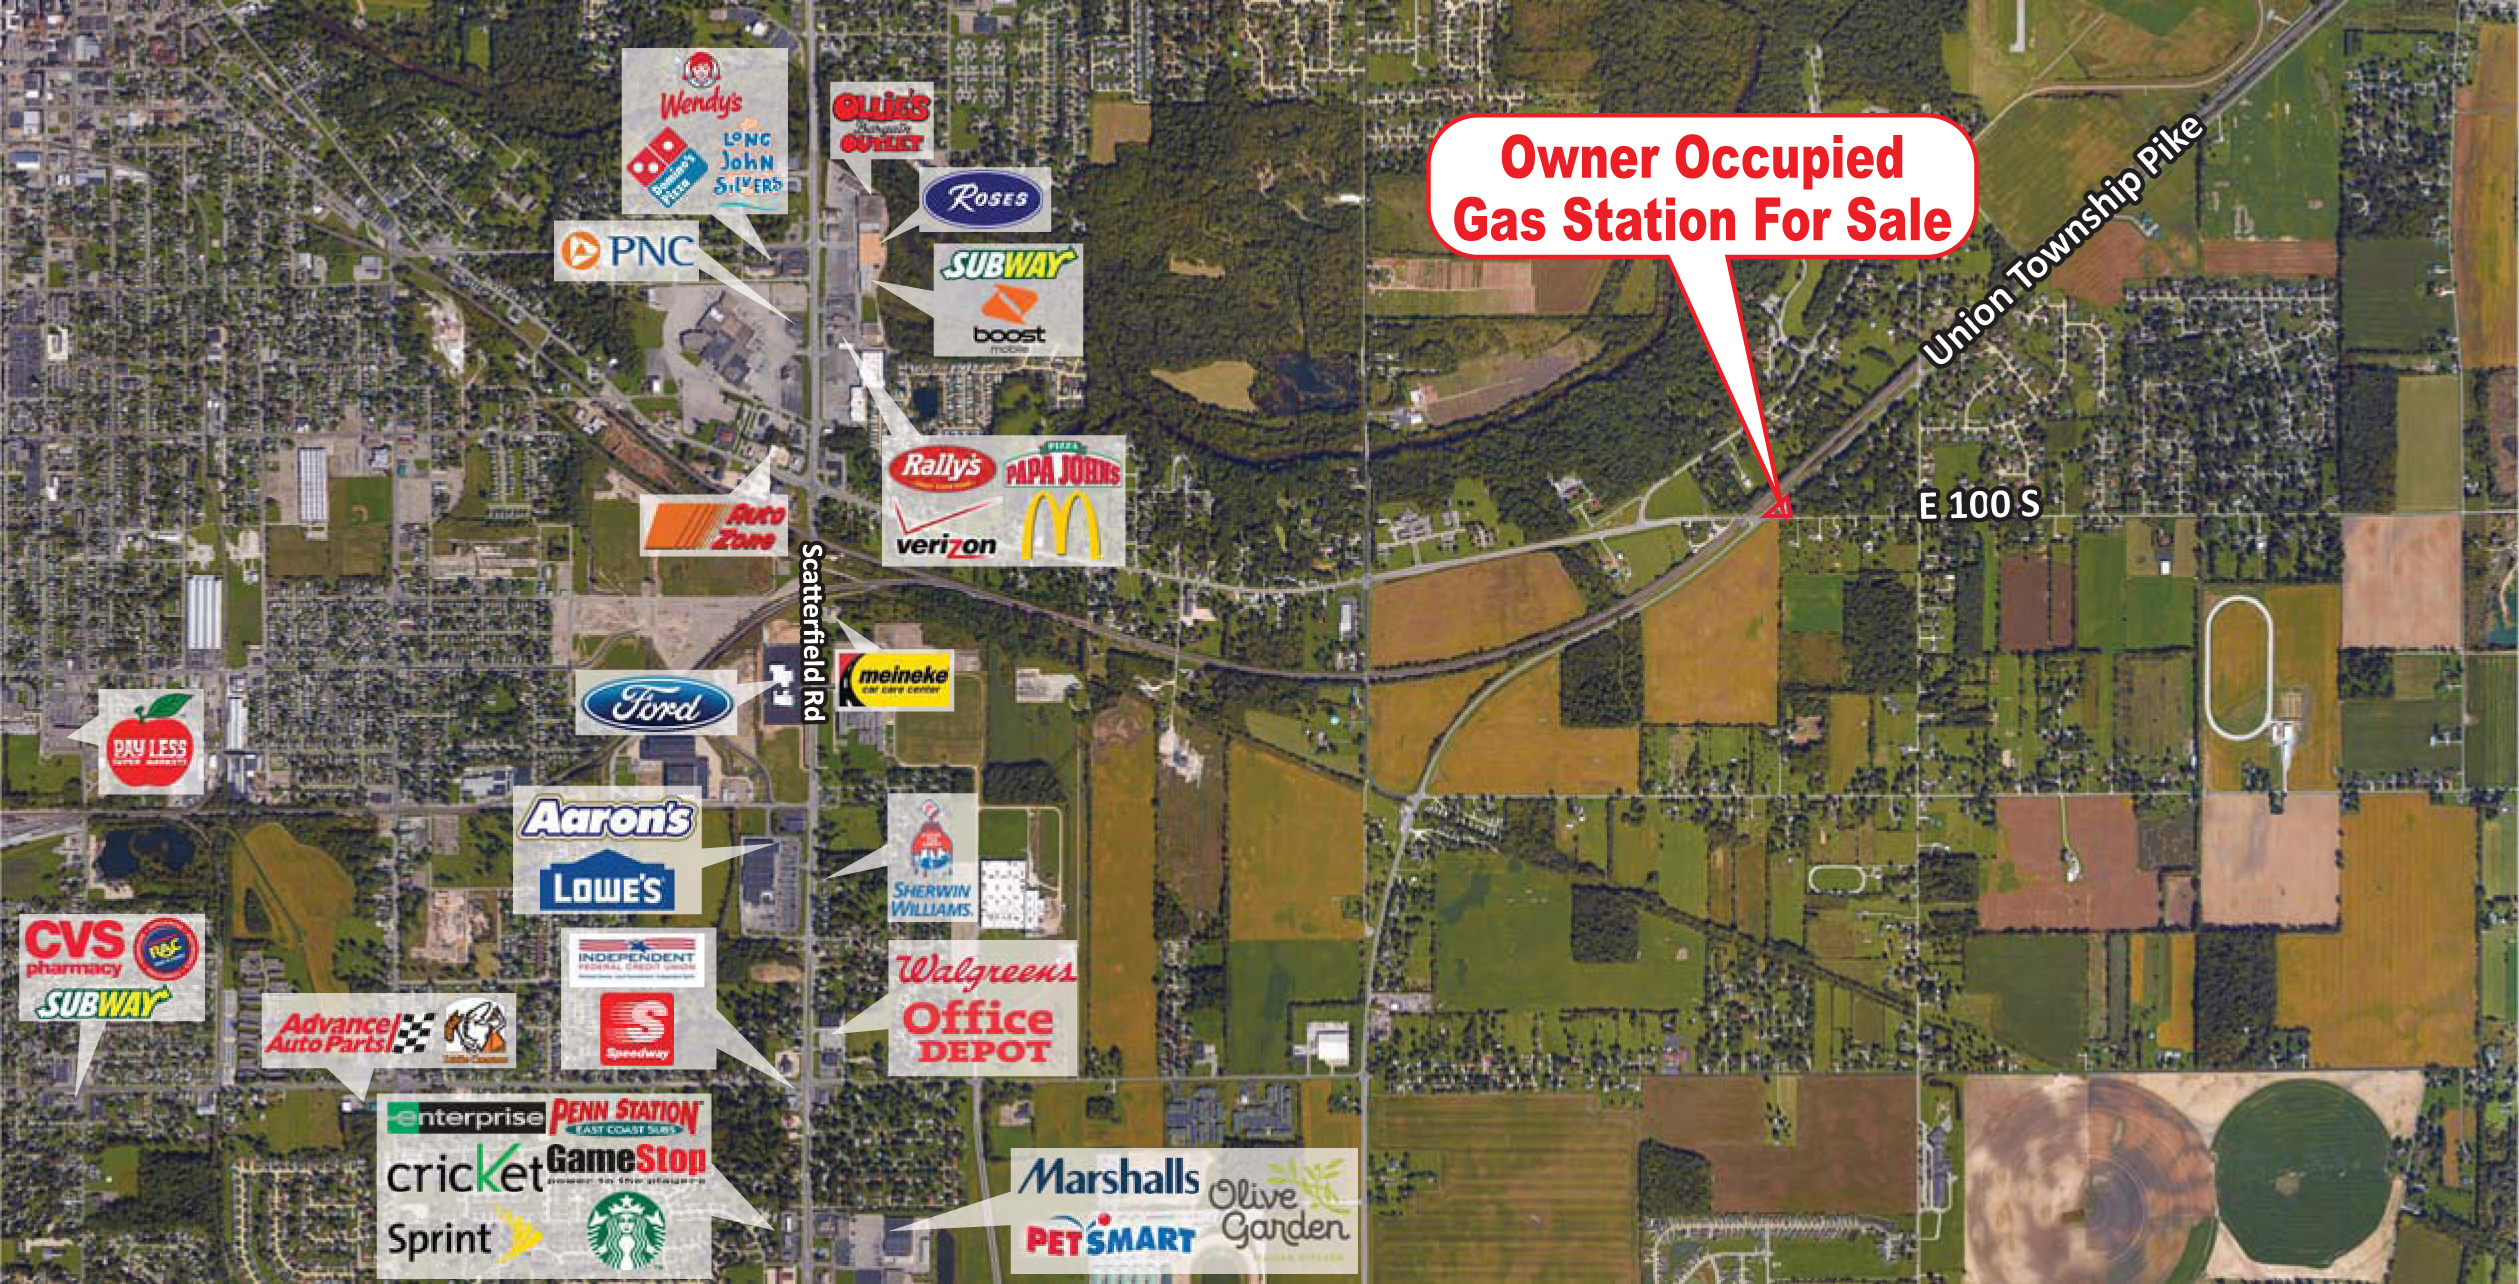 Commercial Property for Lease Sale | Search Retail Space | Midland